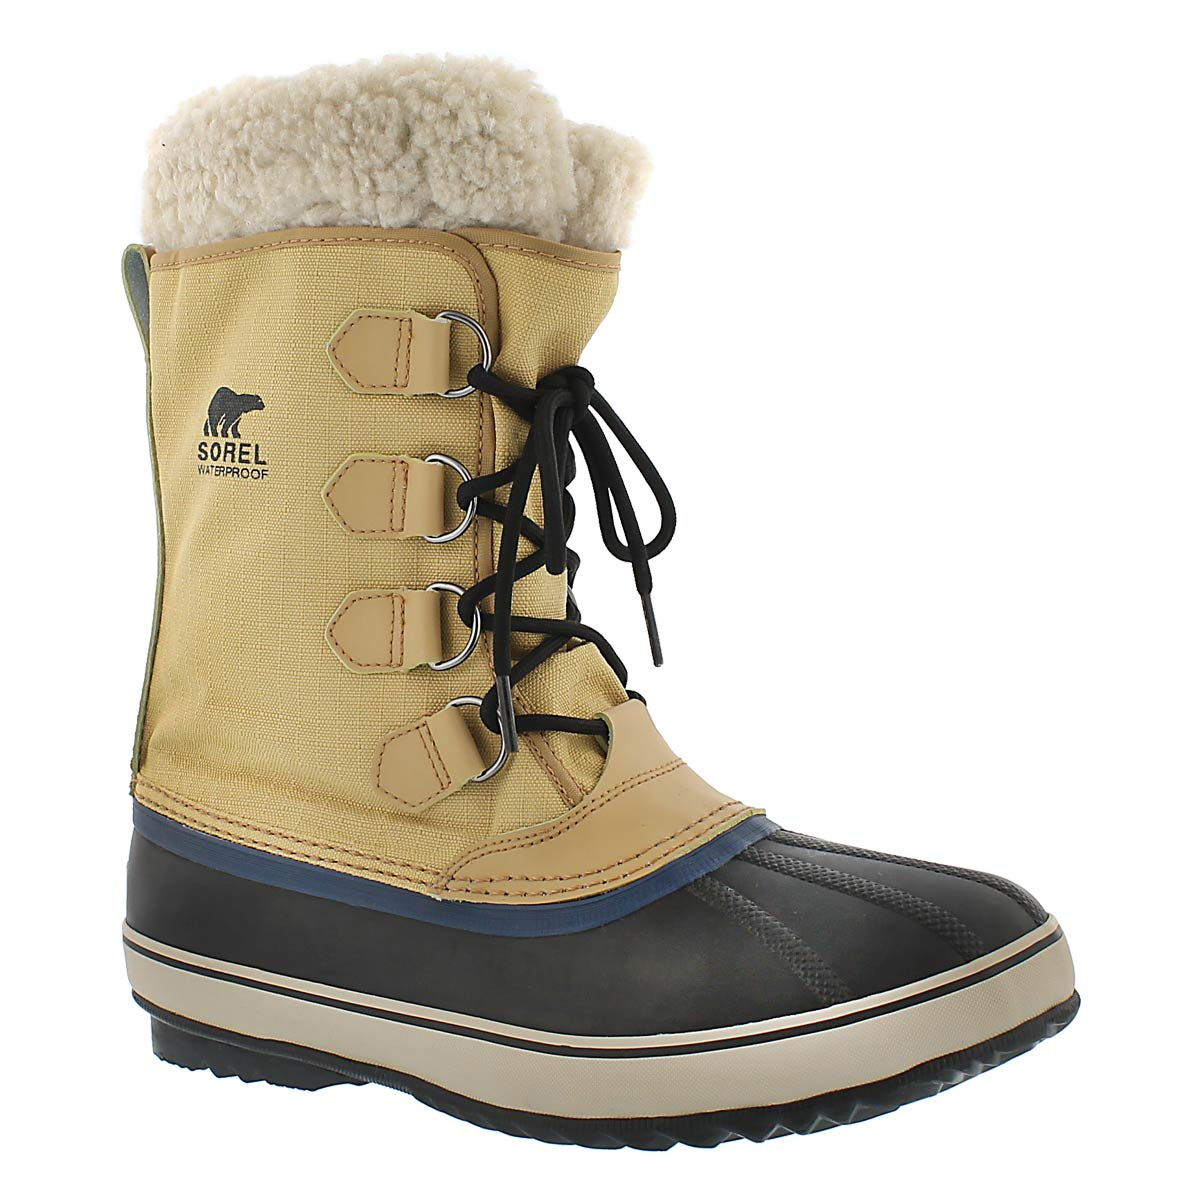 Mns 1964 Pac Nylon curry winter boot